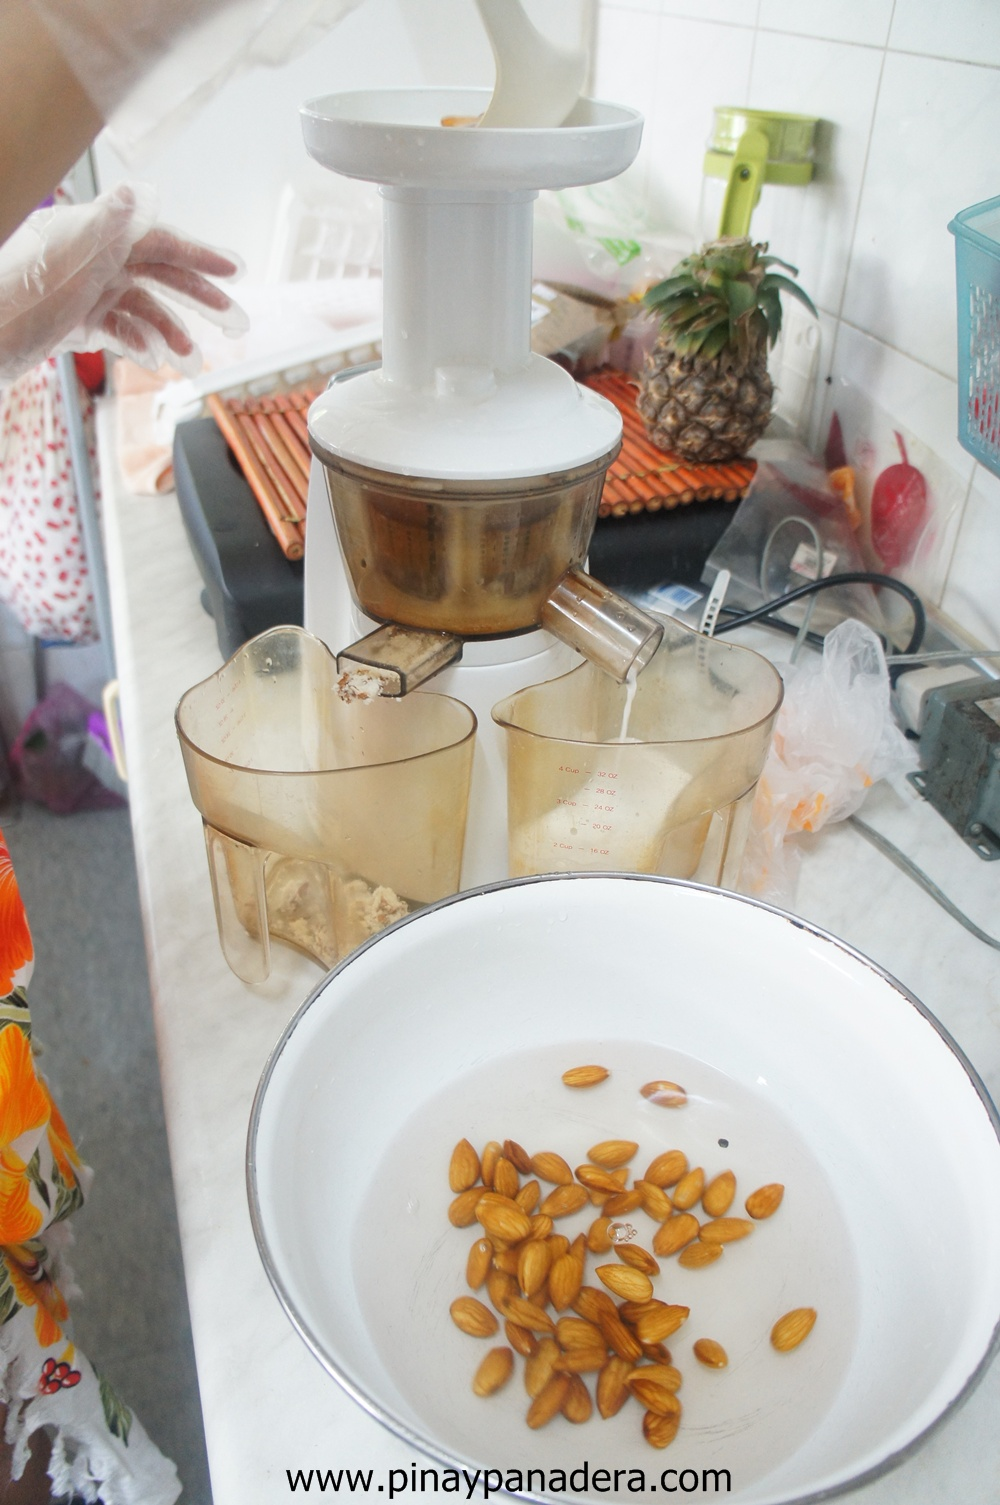 Homemade Almond Milk Slow Juicer : Pinay Panadera s Culinary Adventures: Kath s Nutritious Homemade Almond Milk